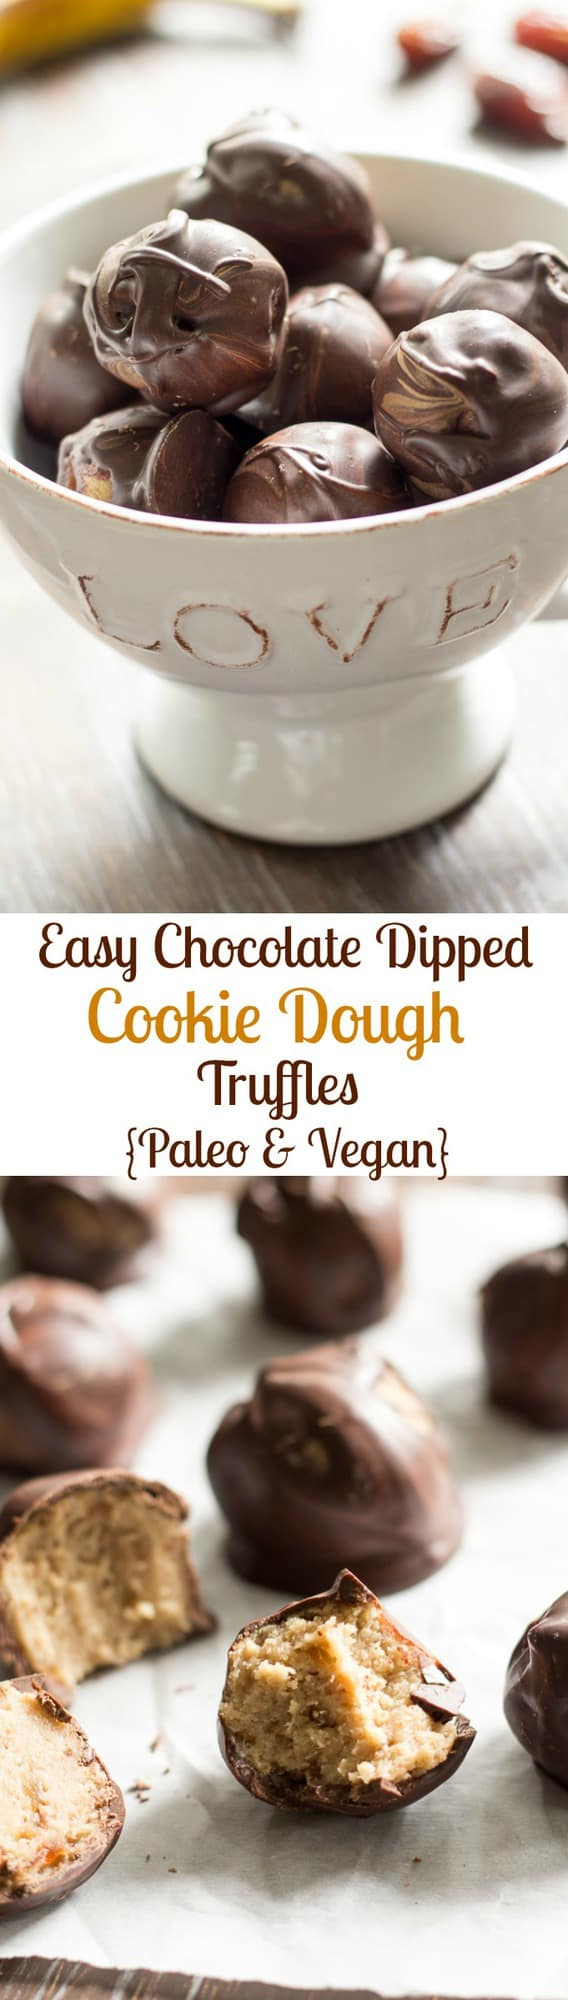 Easy chocolate dipped cookie dough truffles made with healthy ingredients yet taste absolutely indulgent! Paleo and vegan friendly, no refined sugar